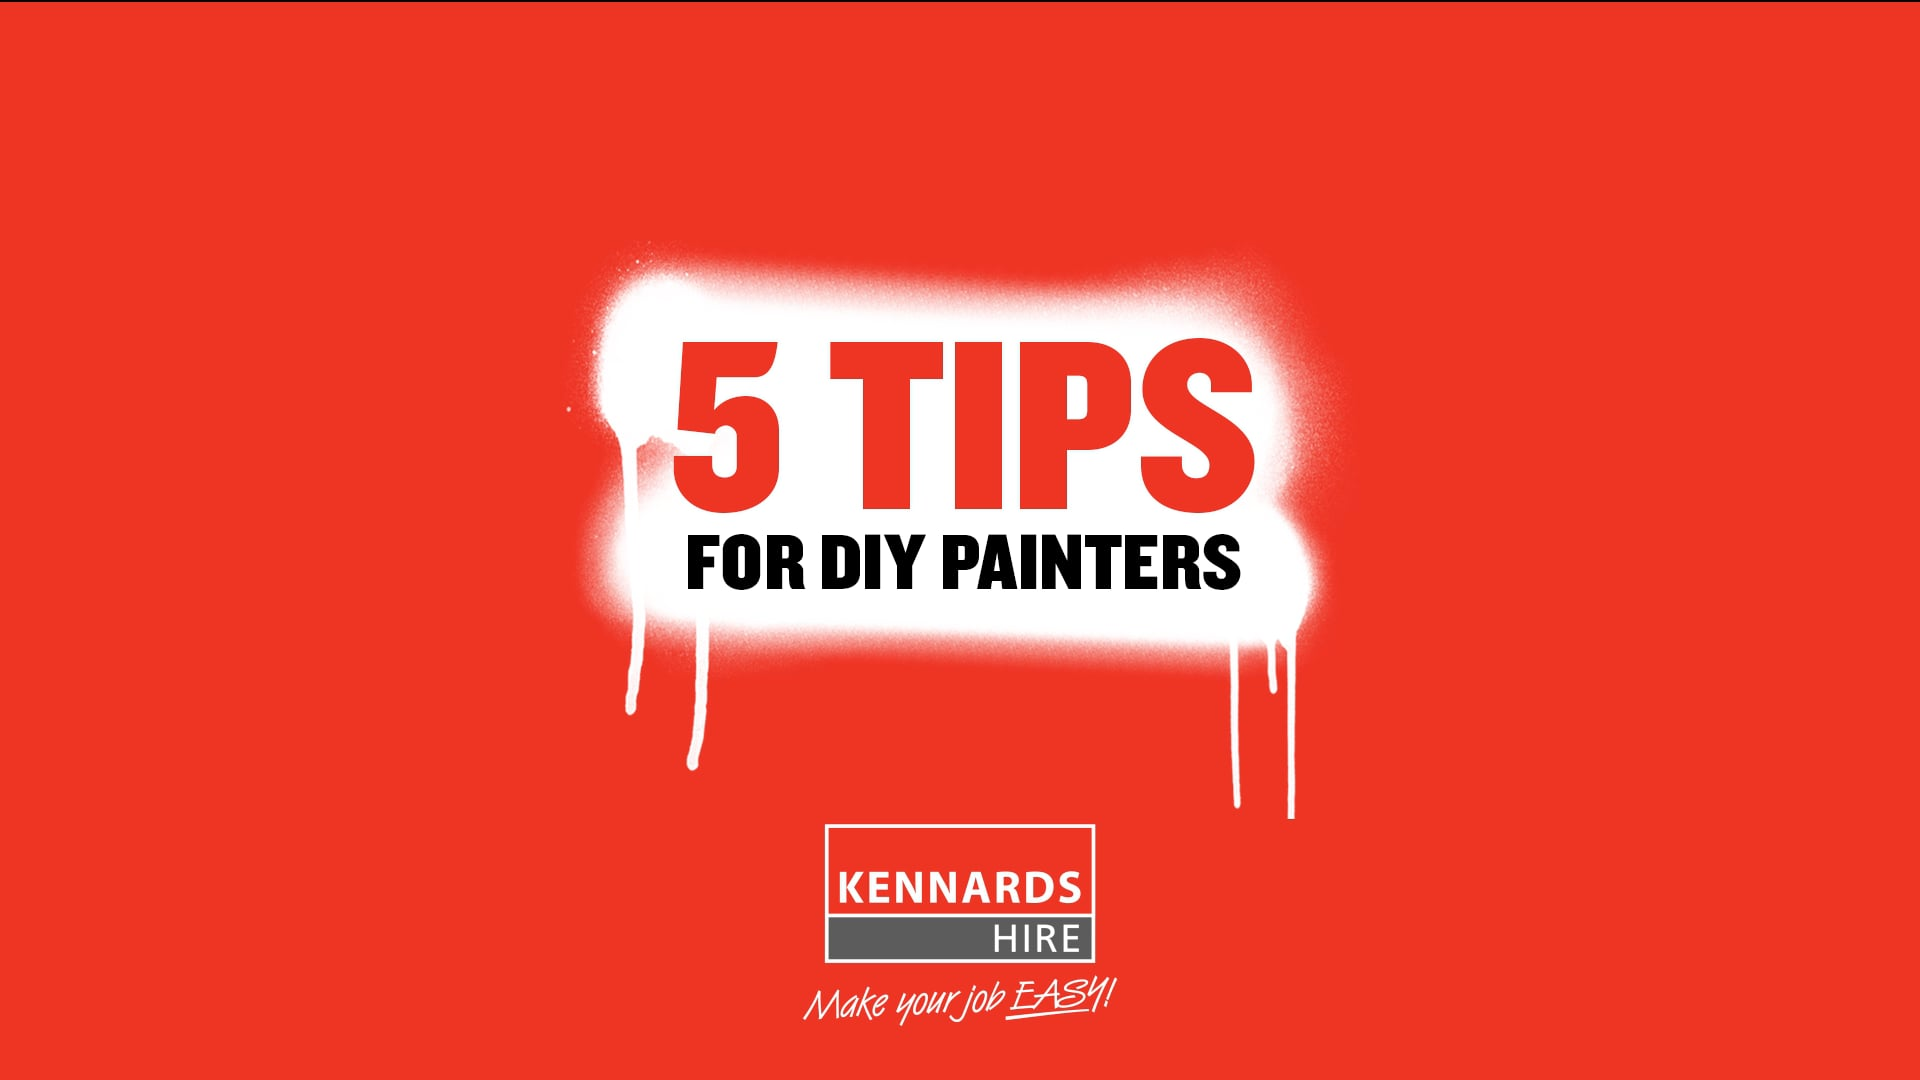 Kennards Hire - Benny From the block - 5 Tips for painters.mp4